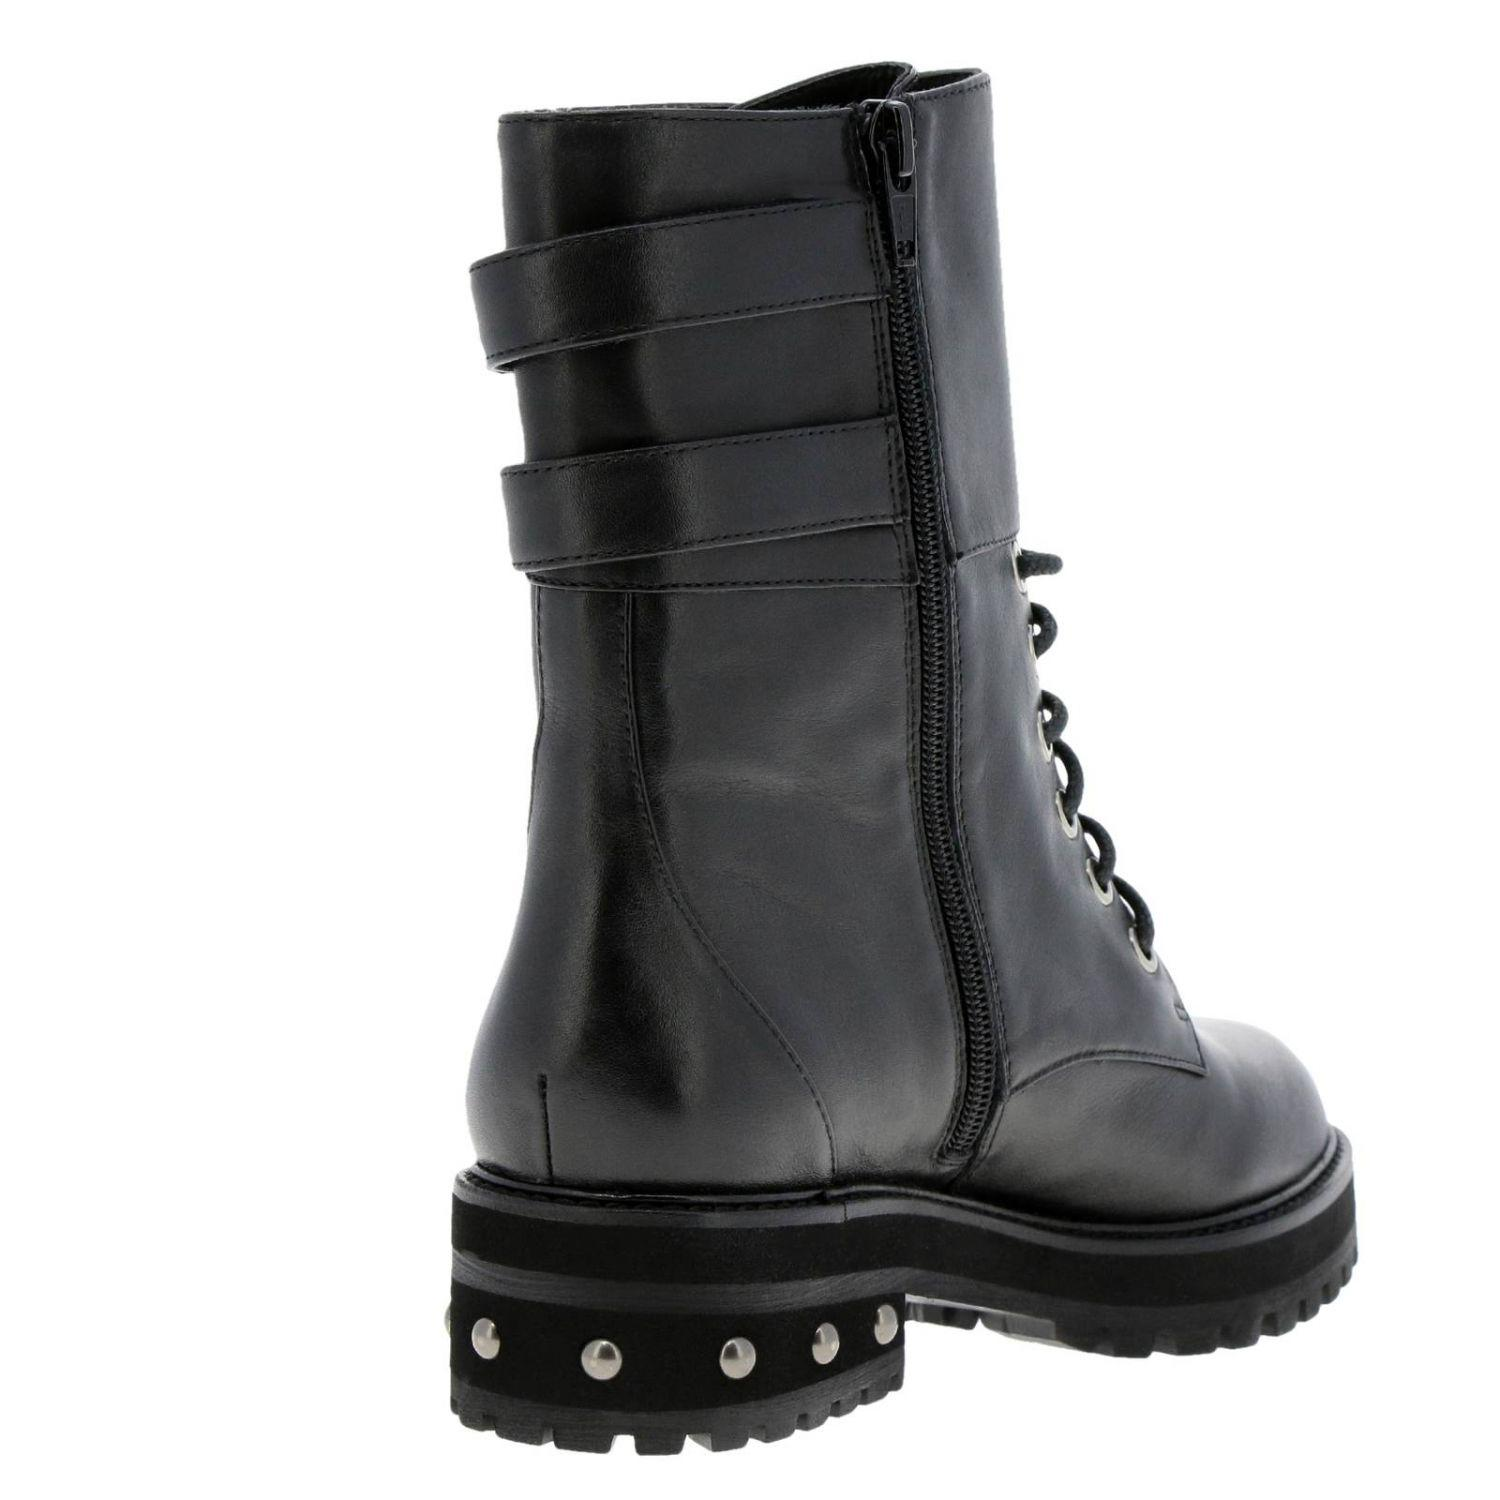 a6b5d7ebbcb Pinko Boots Women in Black - Lyst